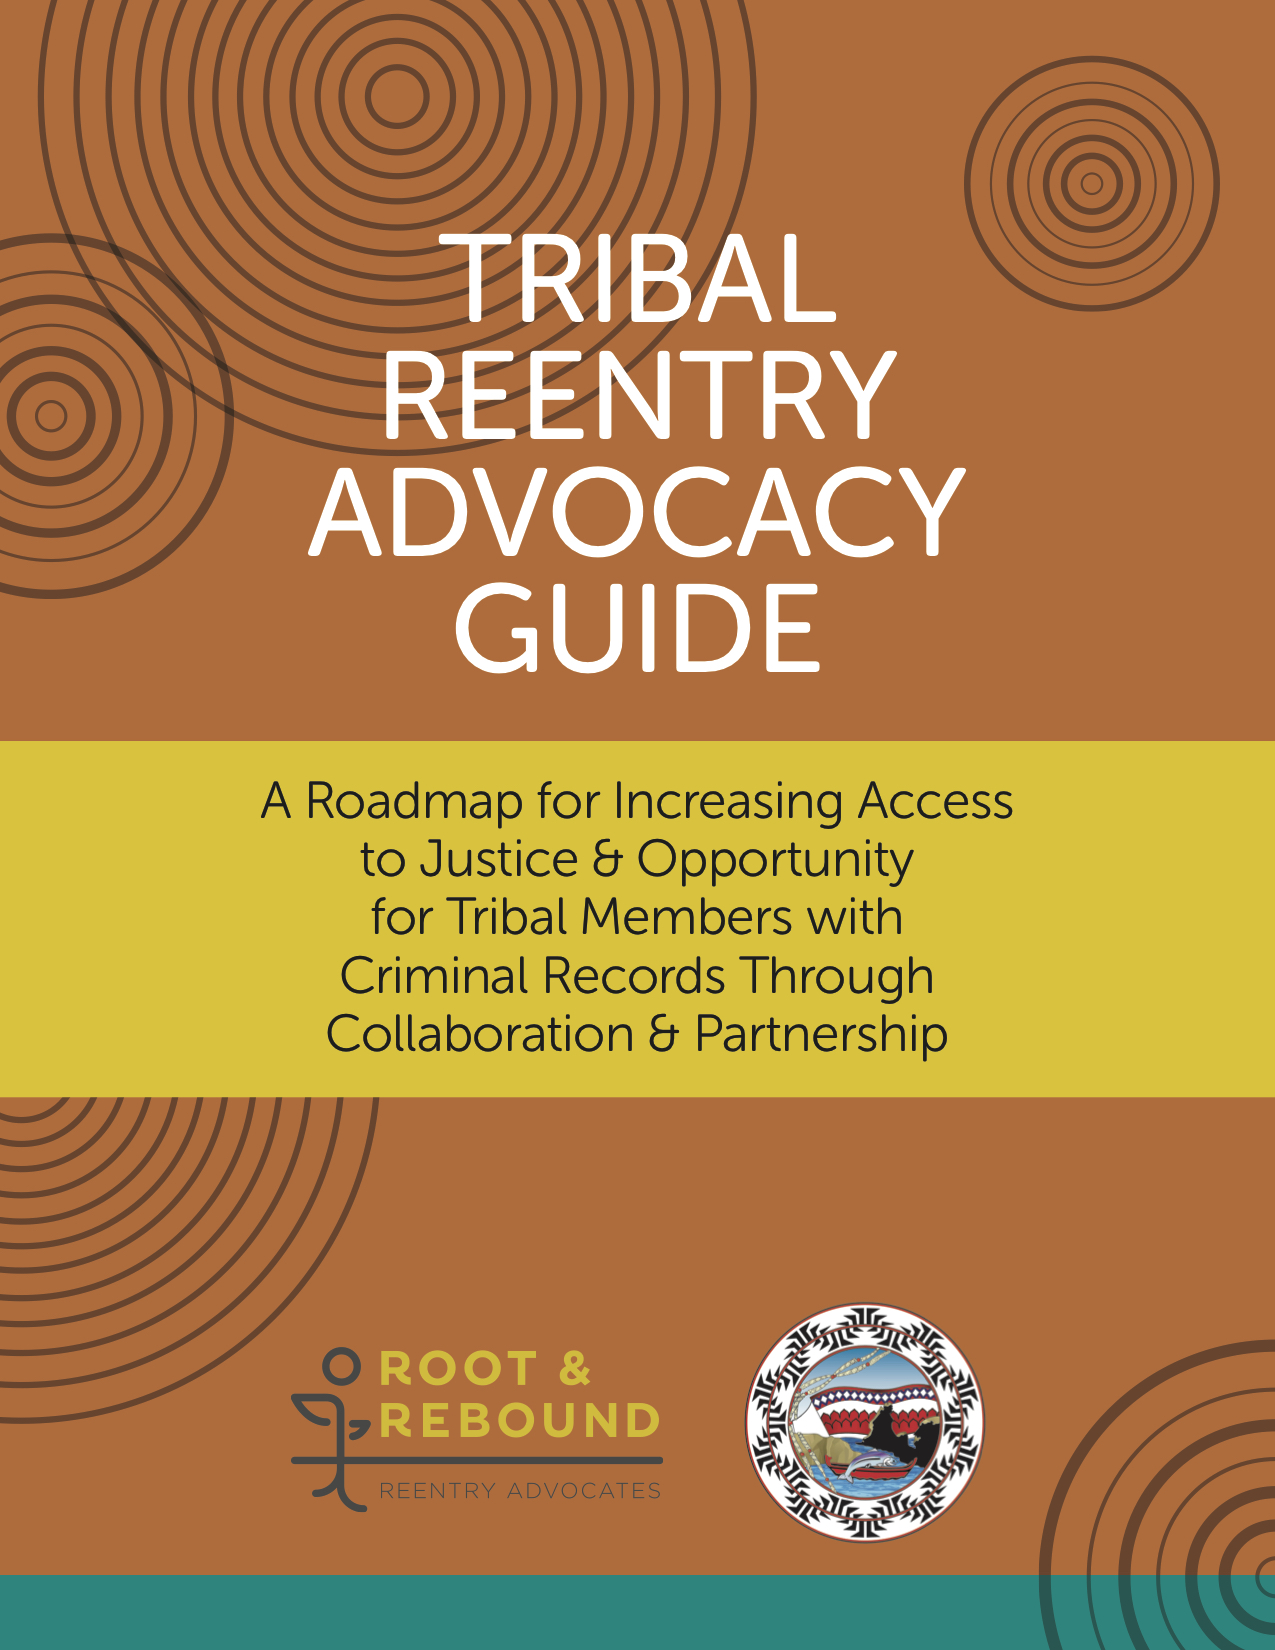 2019_Tribal Reentry Advocacy Guide.jpg